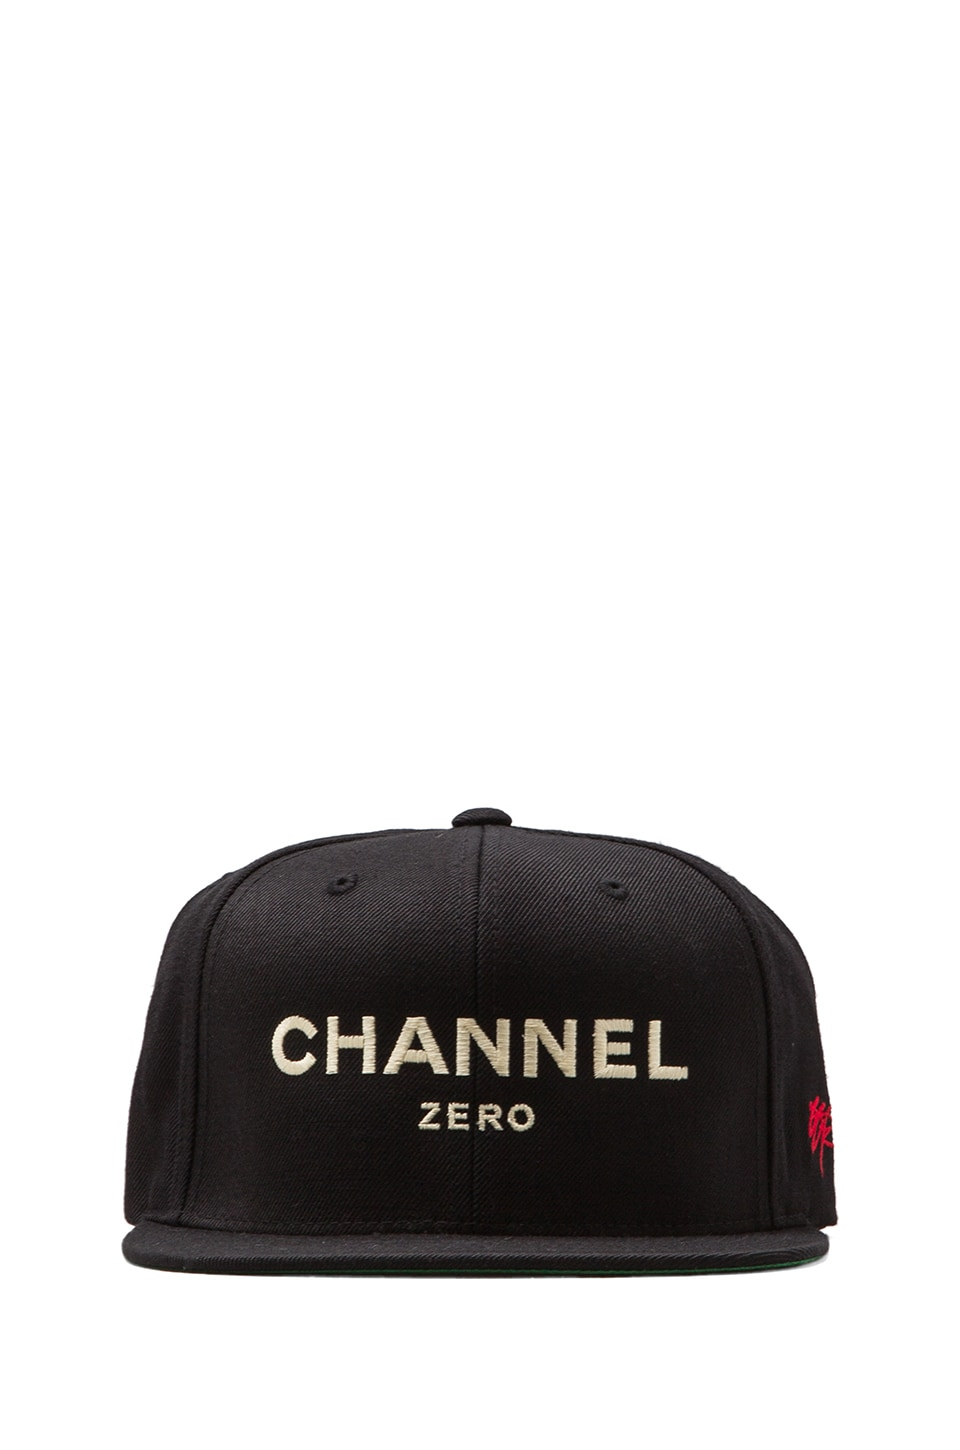 SSUR Channel Zero Snapback in Black/Cream